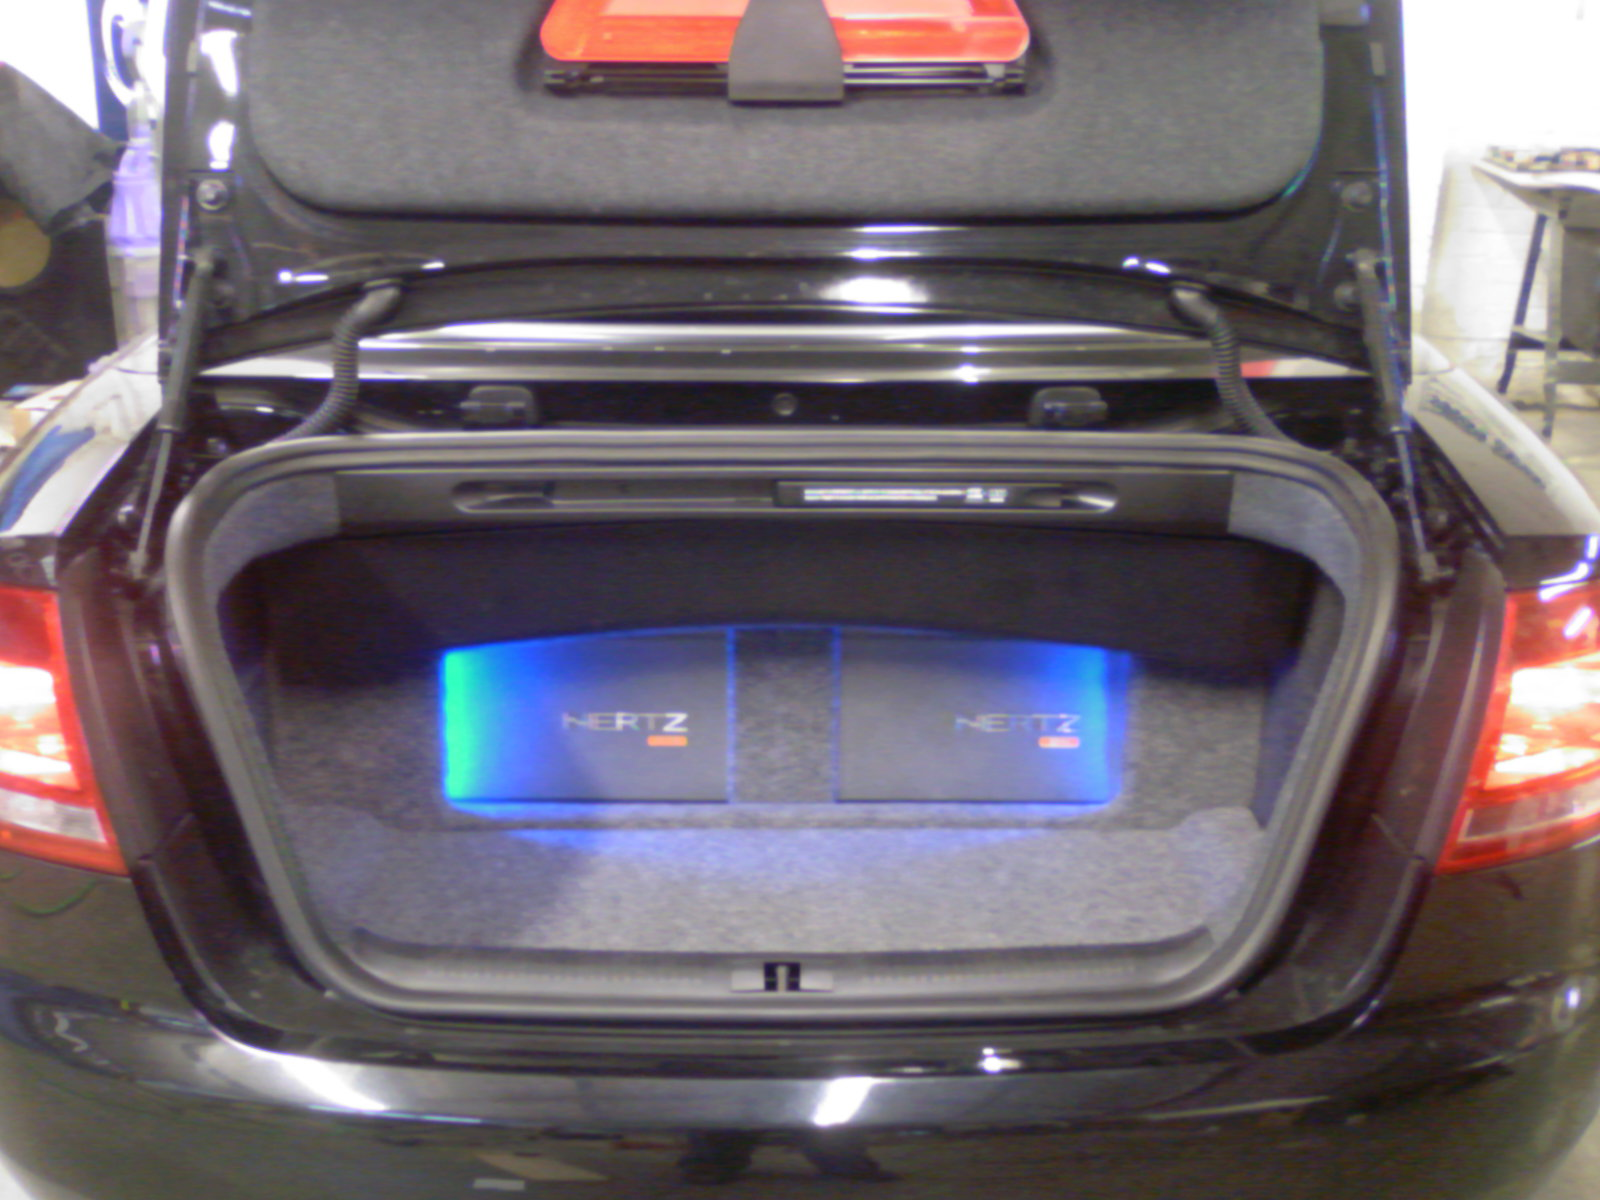 Boot Installs Soundsecure Co Uk Mobile Car Audio And